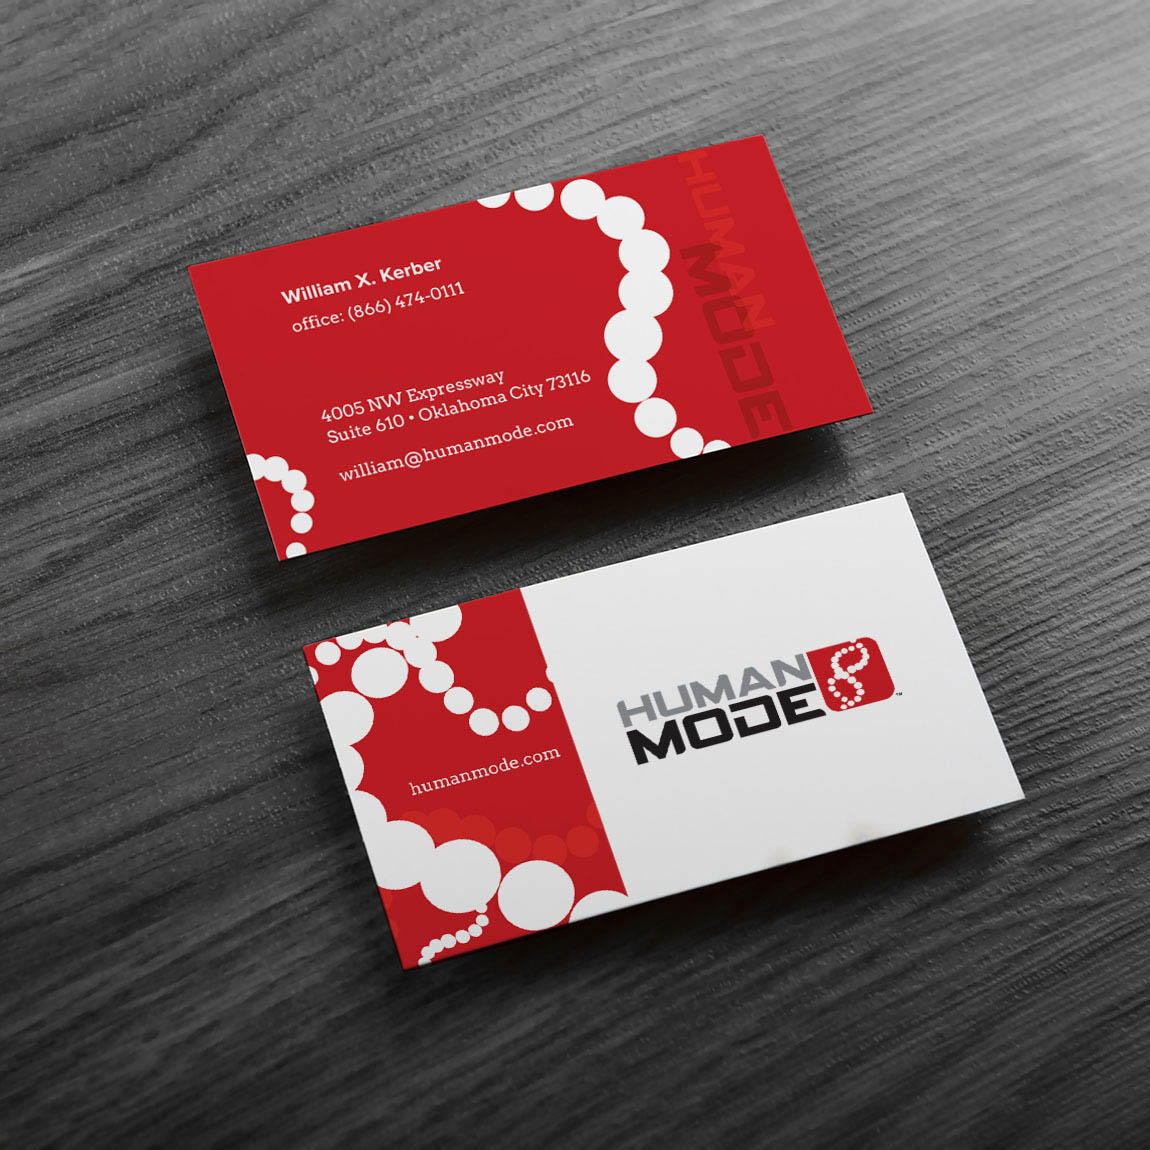 humanmode-business-cards